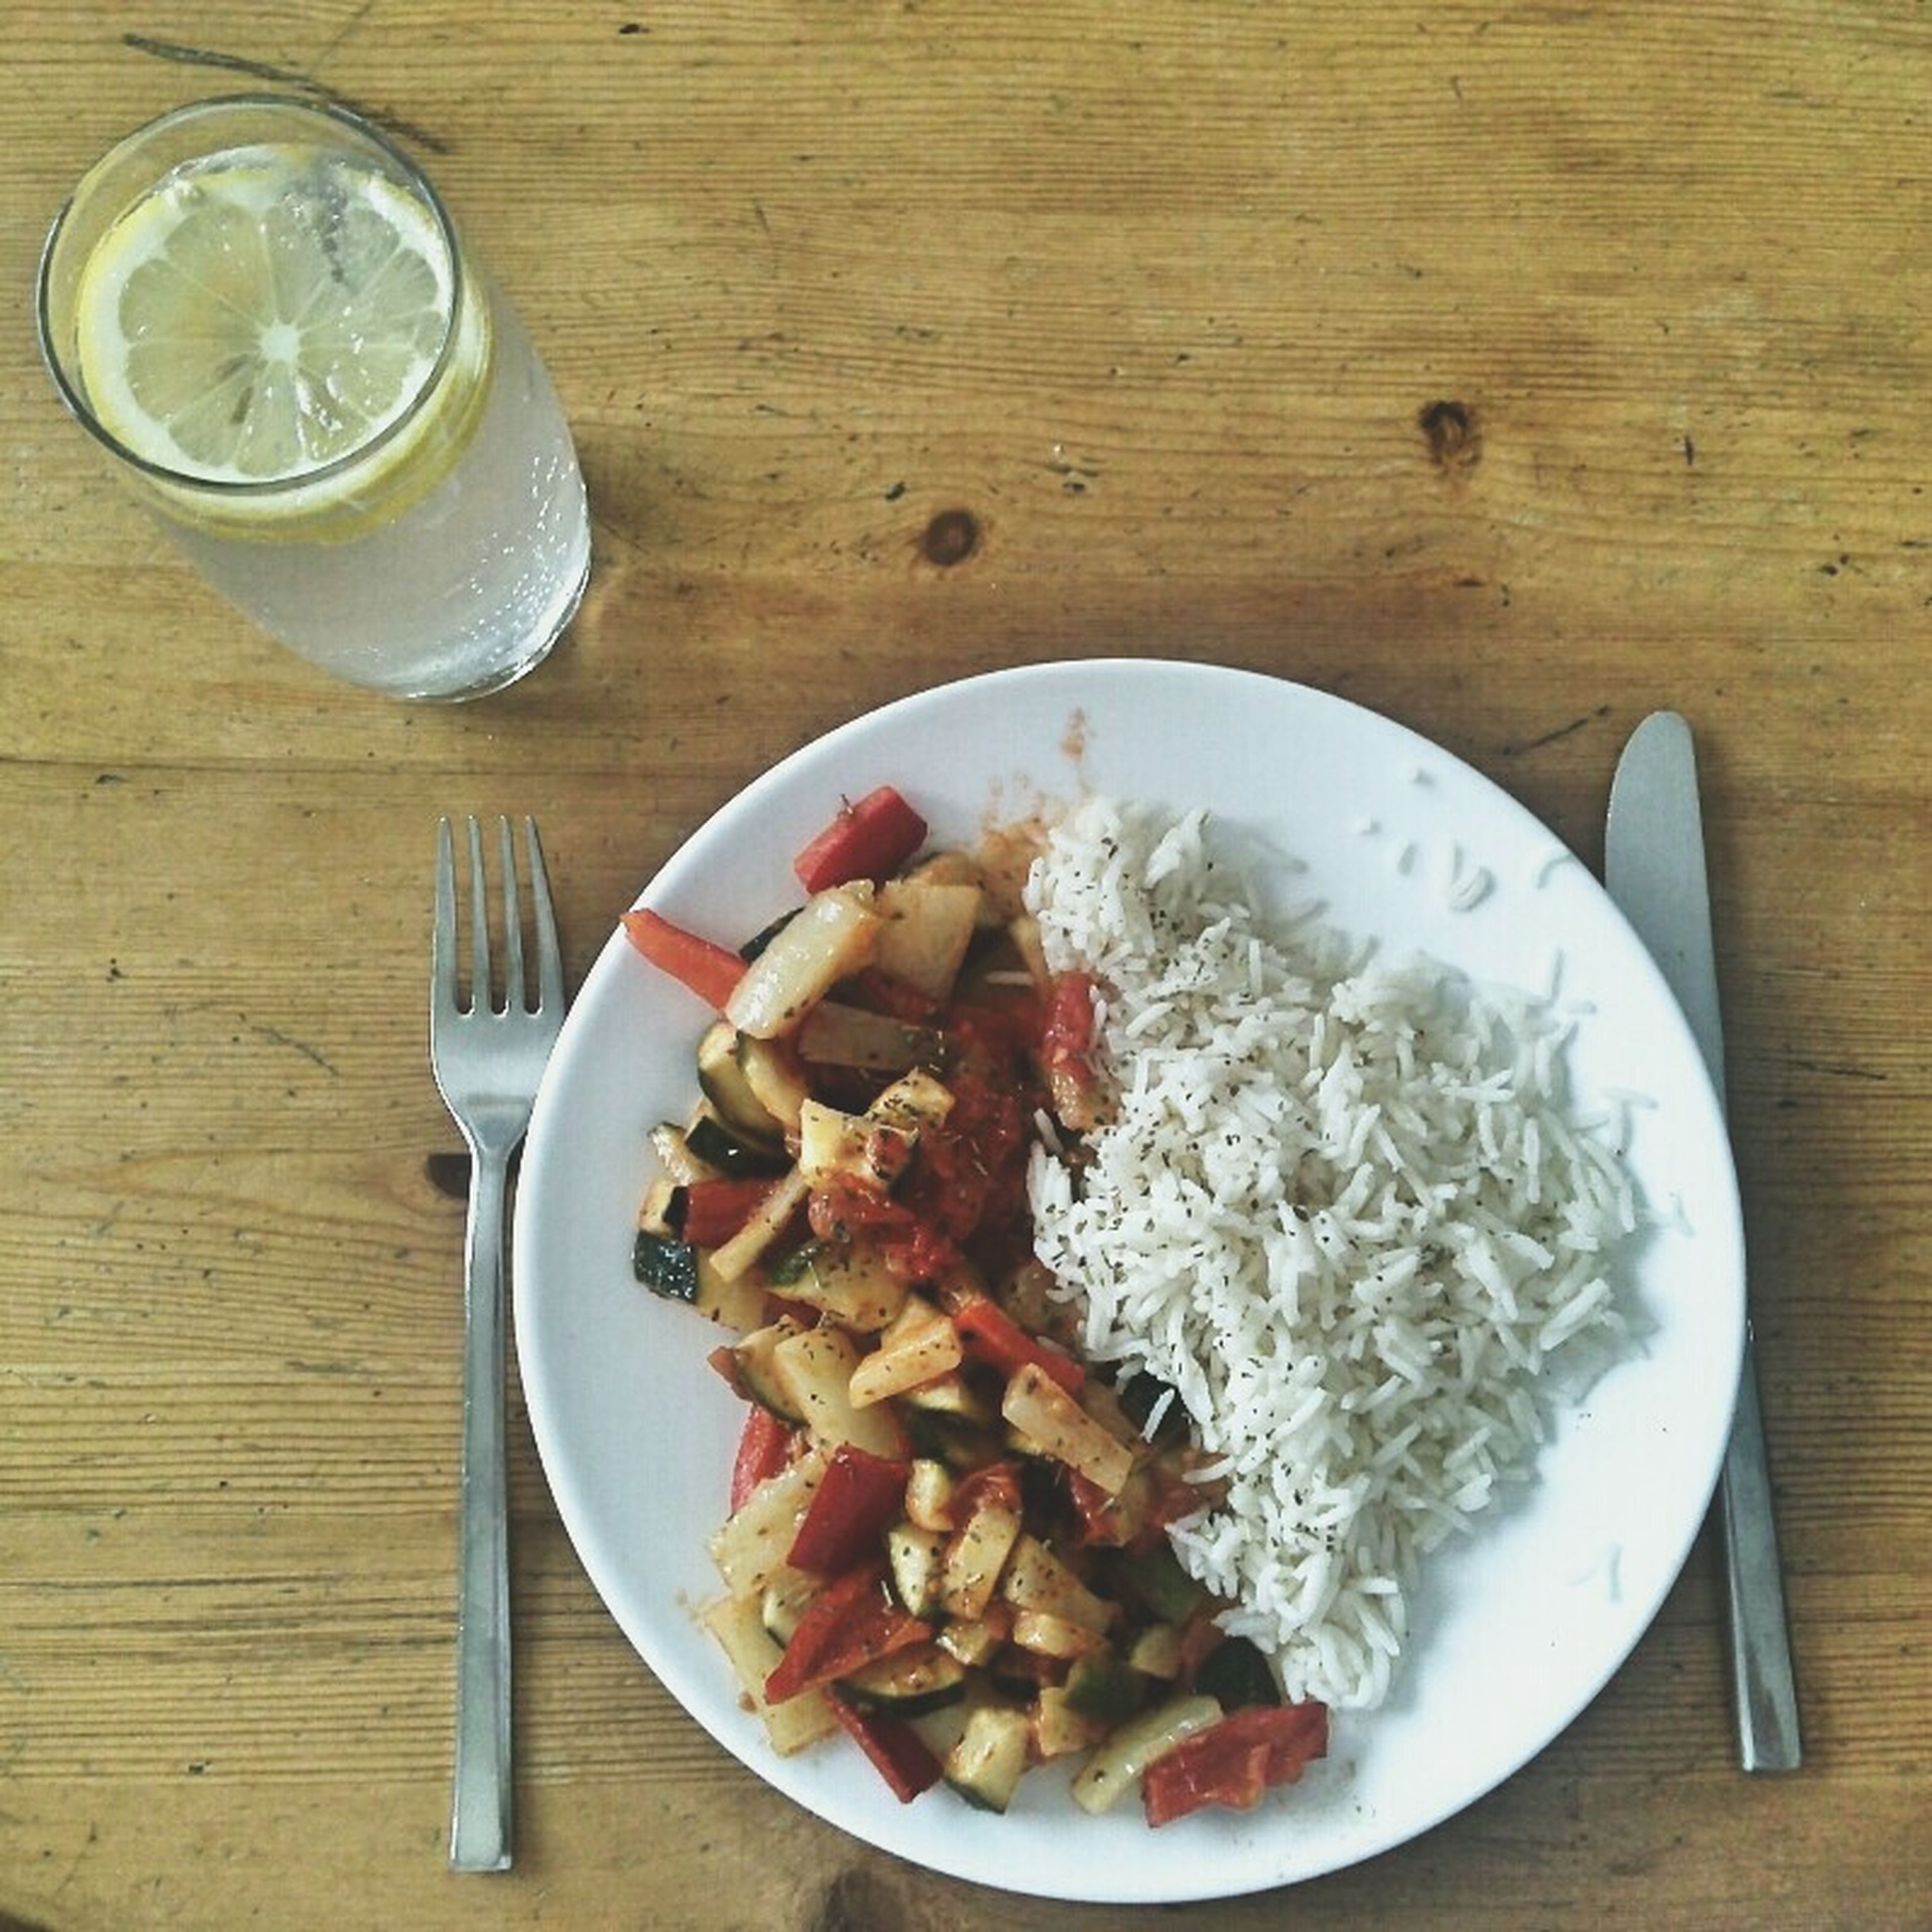 food and drink, food, freshness, table, indoors, ready-to-eat, plate, still life, healthy eating, serving size, meal, served, bowl, high angle view, drink, drinking glass, fork, indulgence, meat, spoon